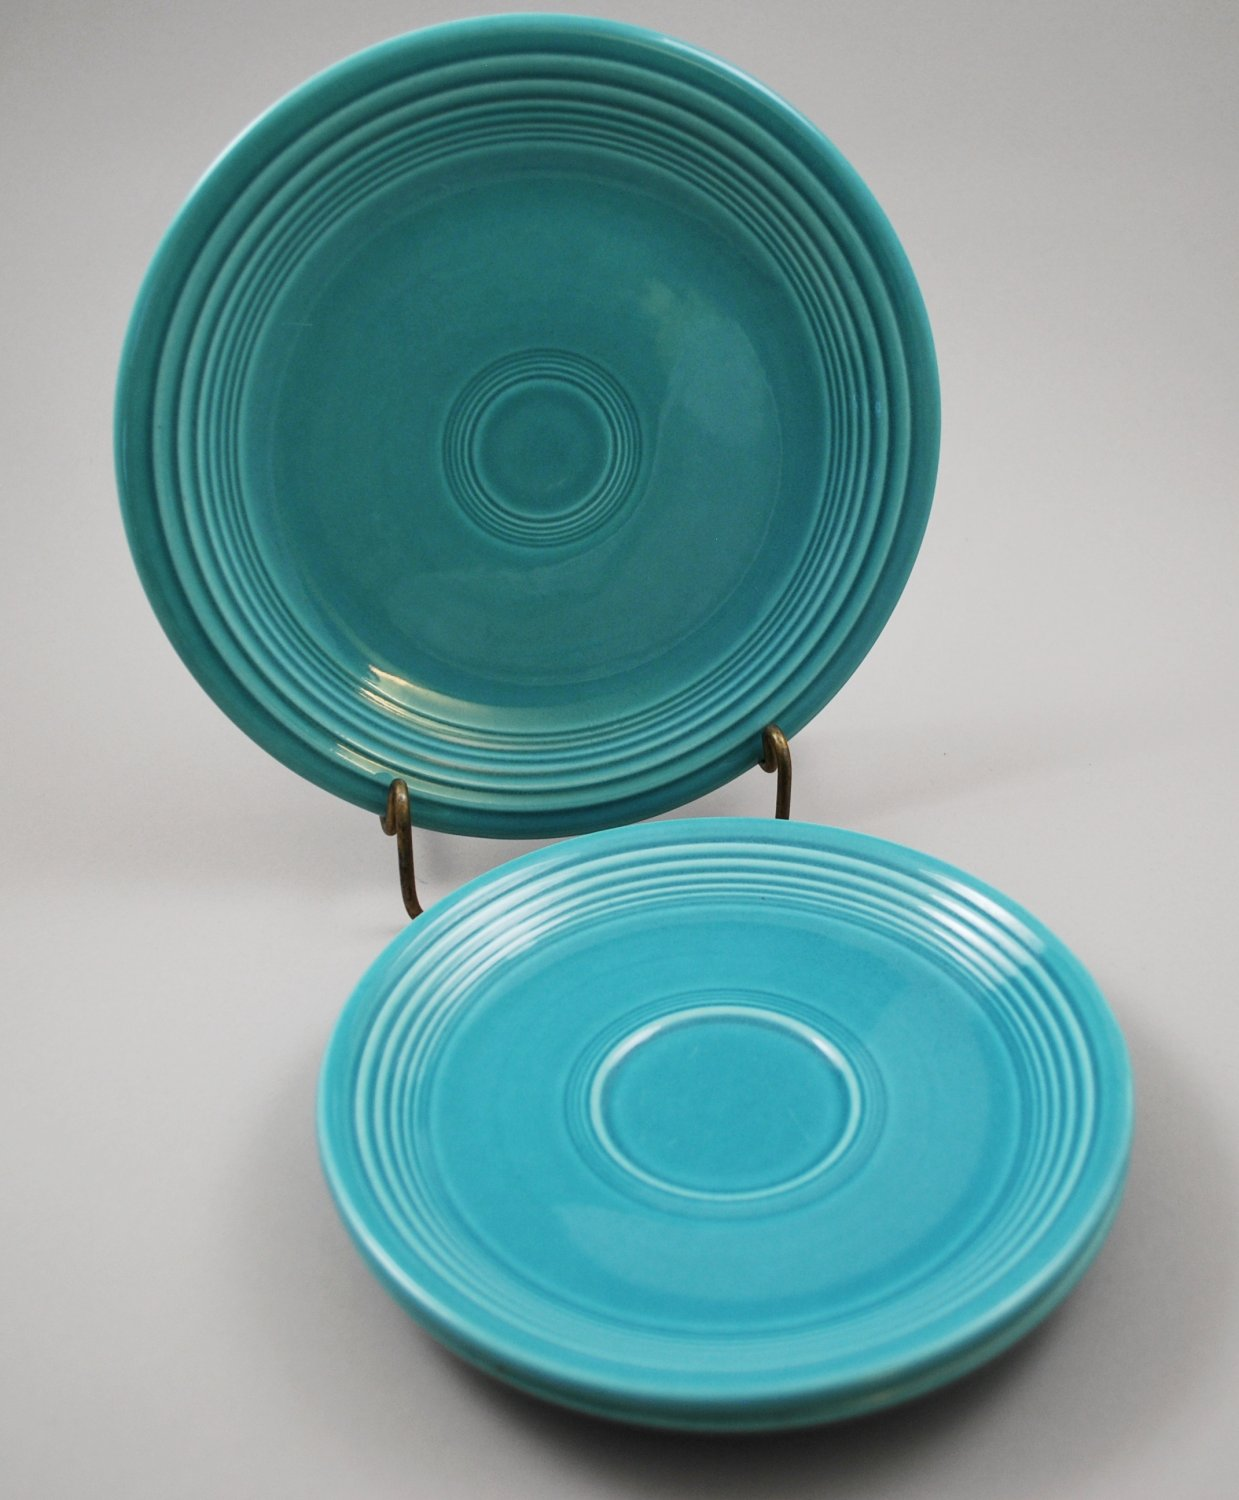 Set of Homer Laughlin Fiesta Vintage Turquoise 1 Dessert Plate and 2 Saucers